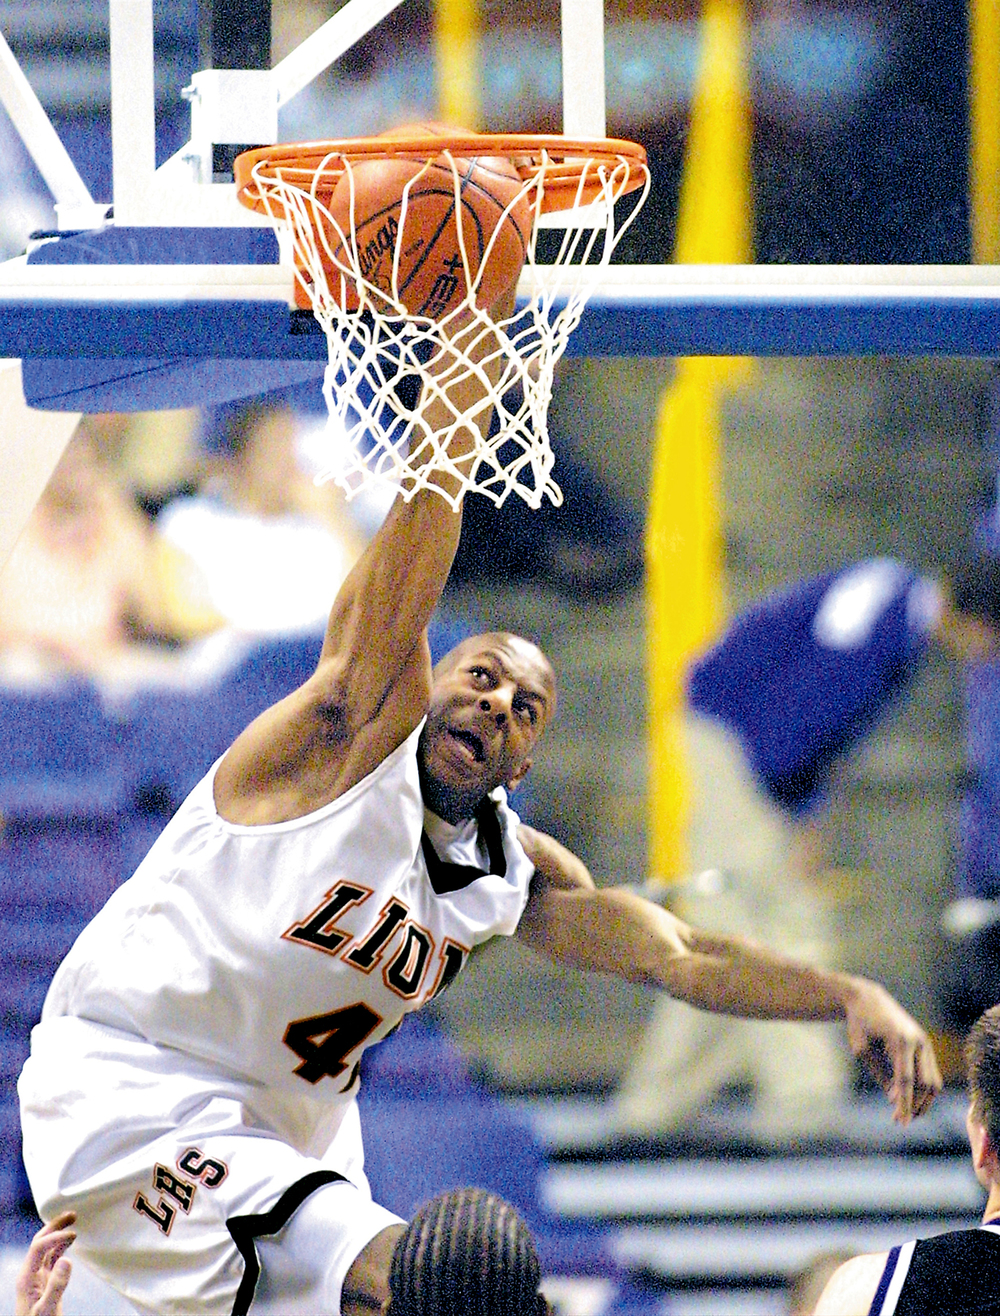 Andre Iguodala slams home one of his four dunks against Broughton High School at the Shop'n Save KMOX Shootout at the Savvis Center in St. Louis Dec. 7, 2001. Ted Schurter/The State Journal-Register.8BIM